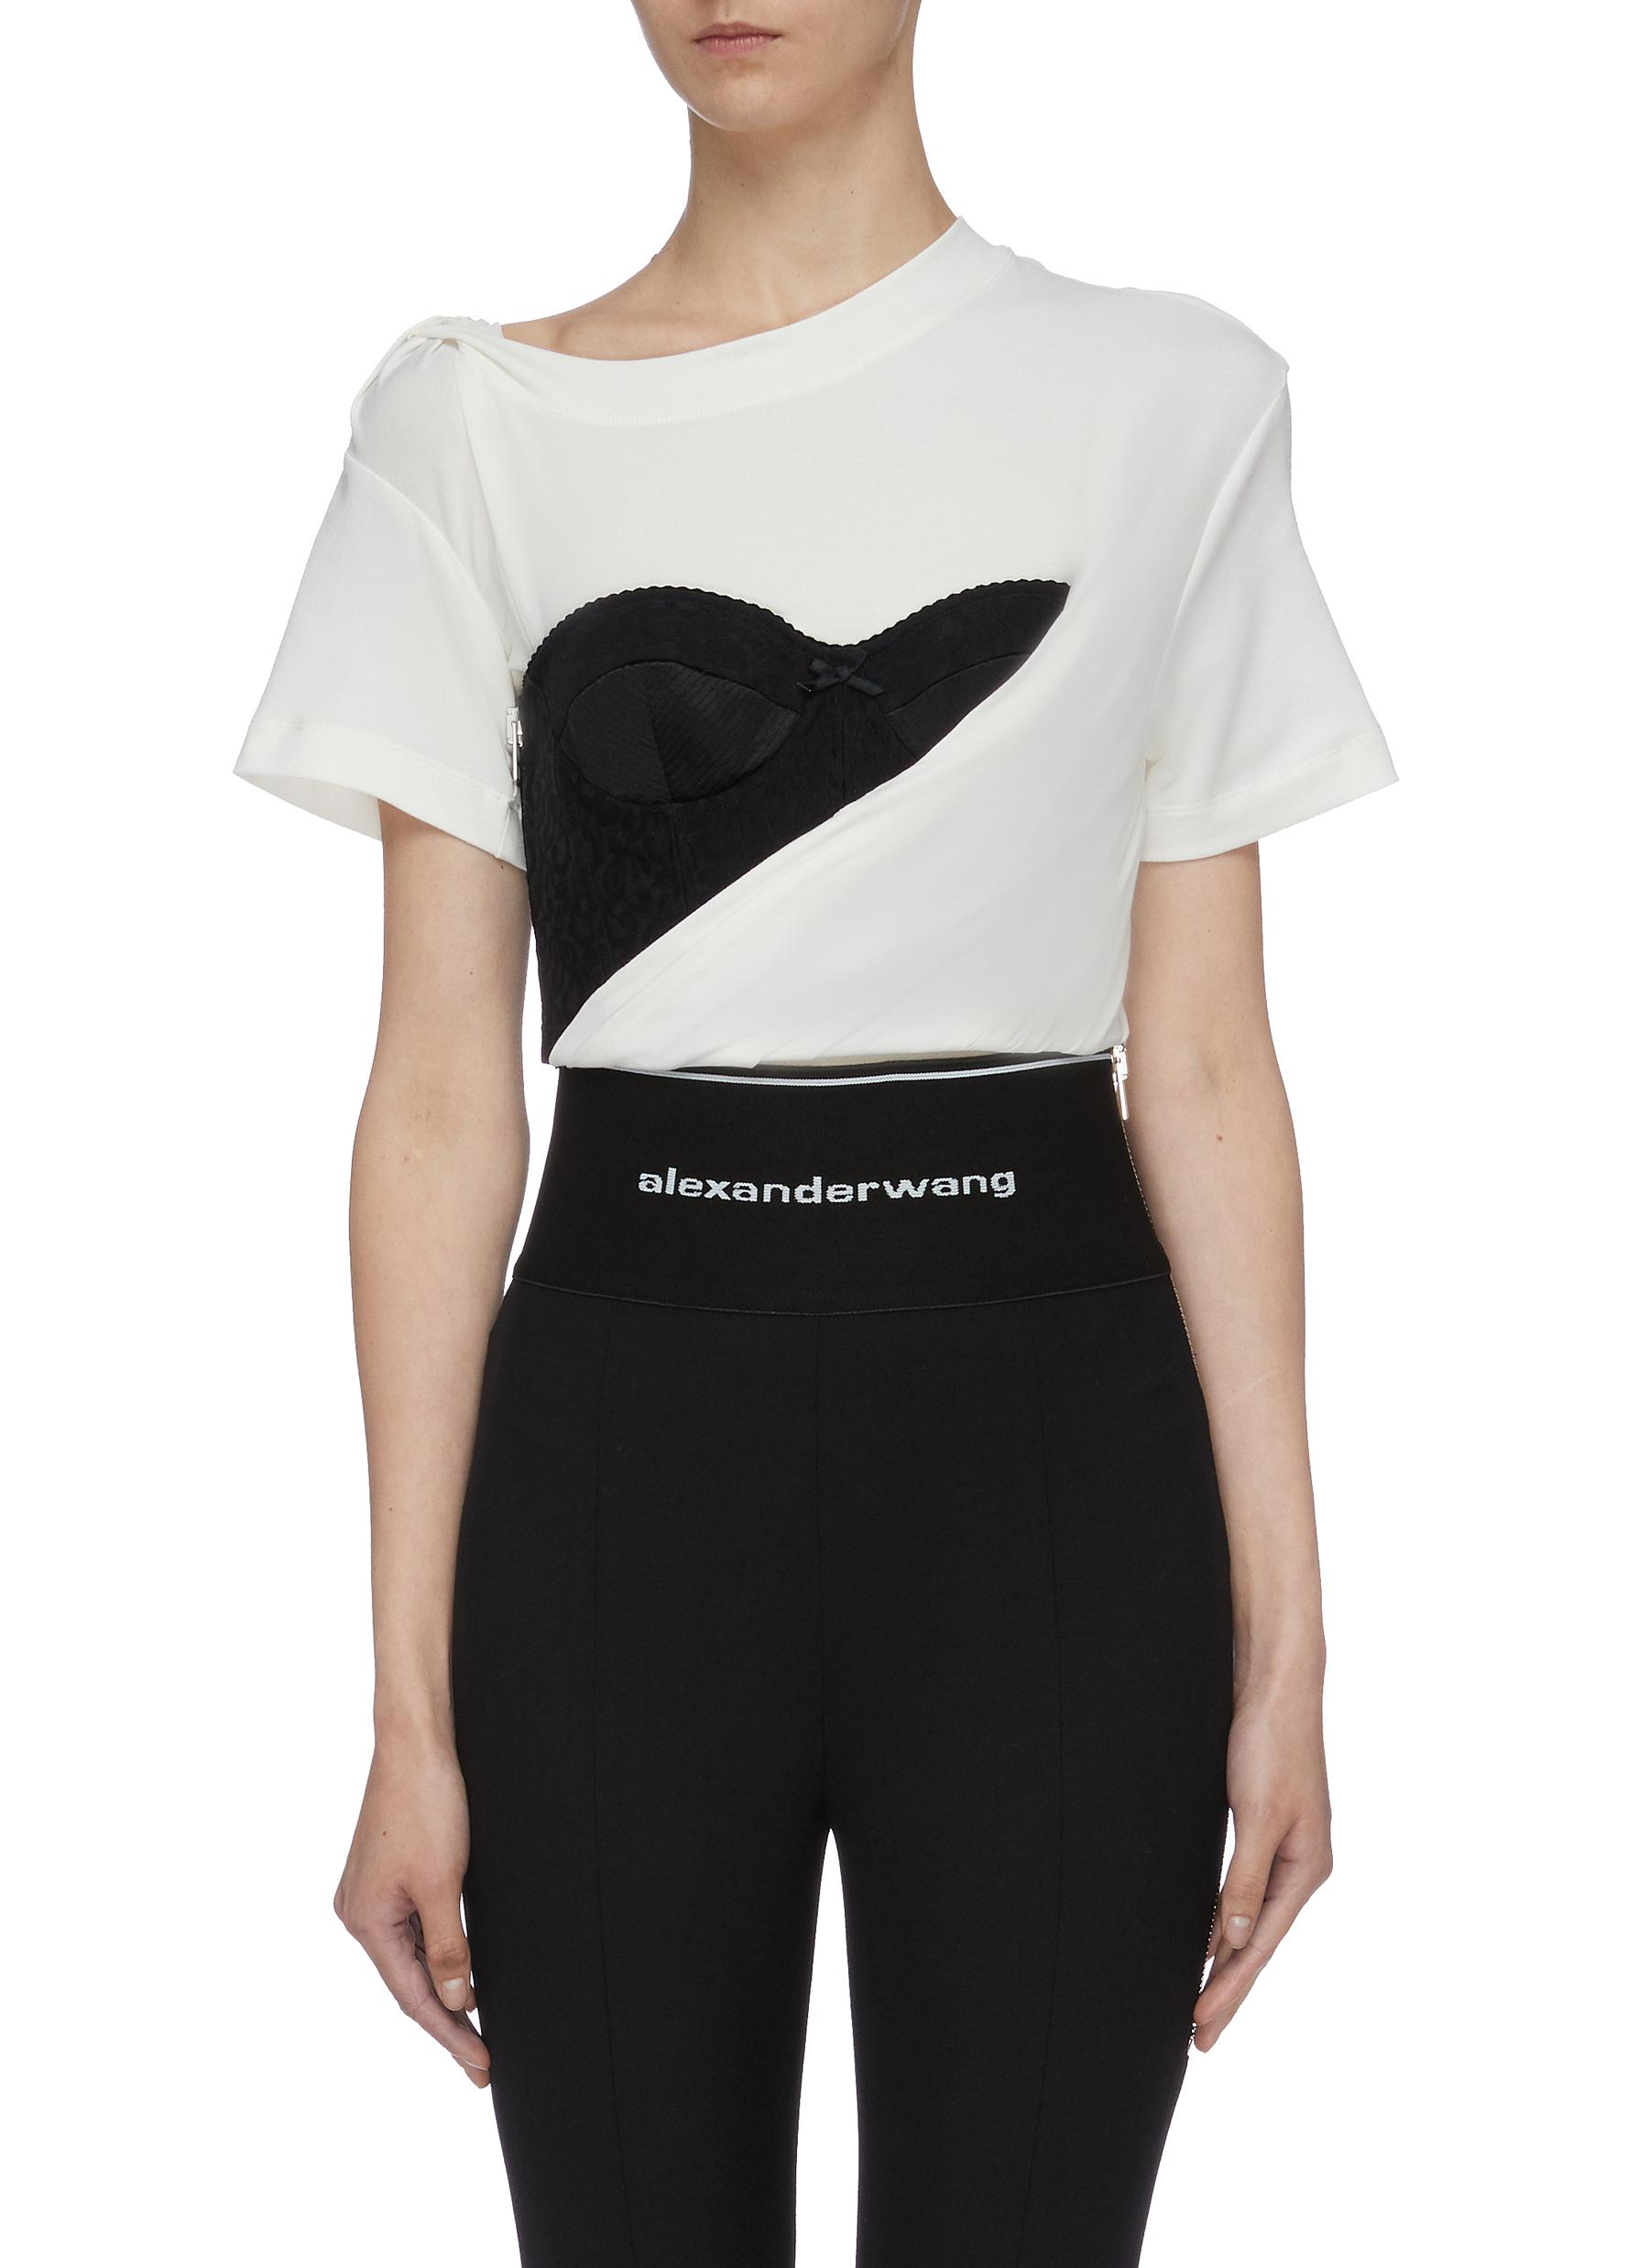 Zip colourblock corset panel gathered drape T-shirt by Alexanderwang